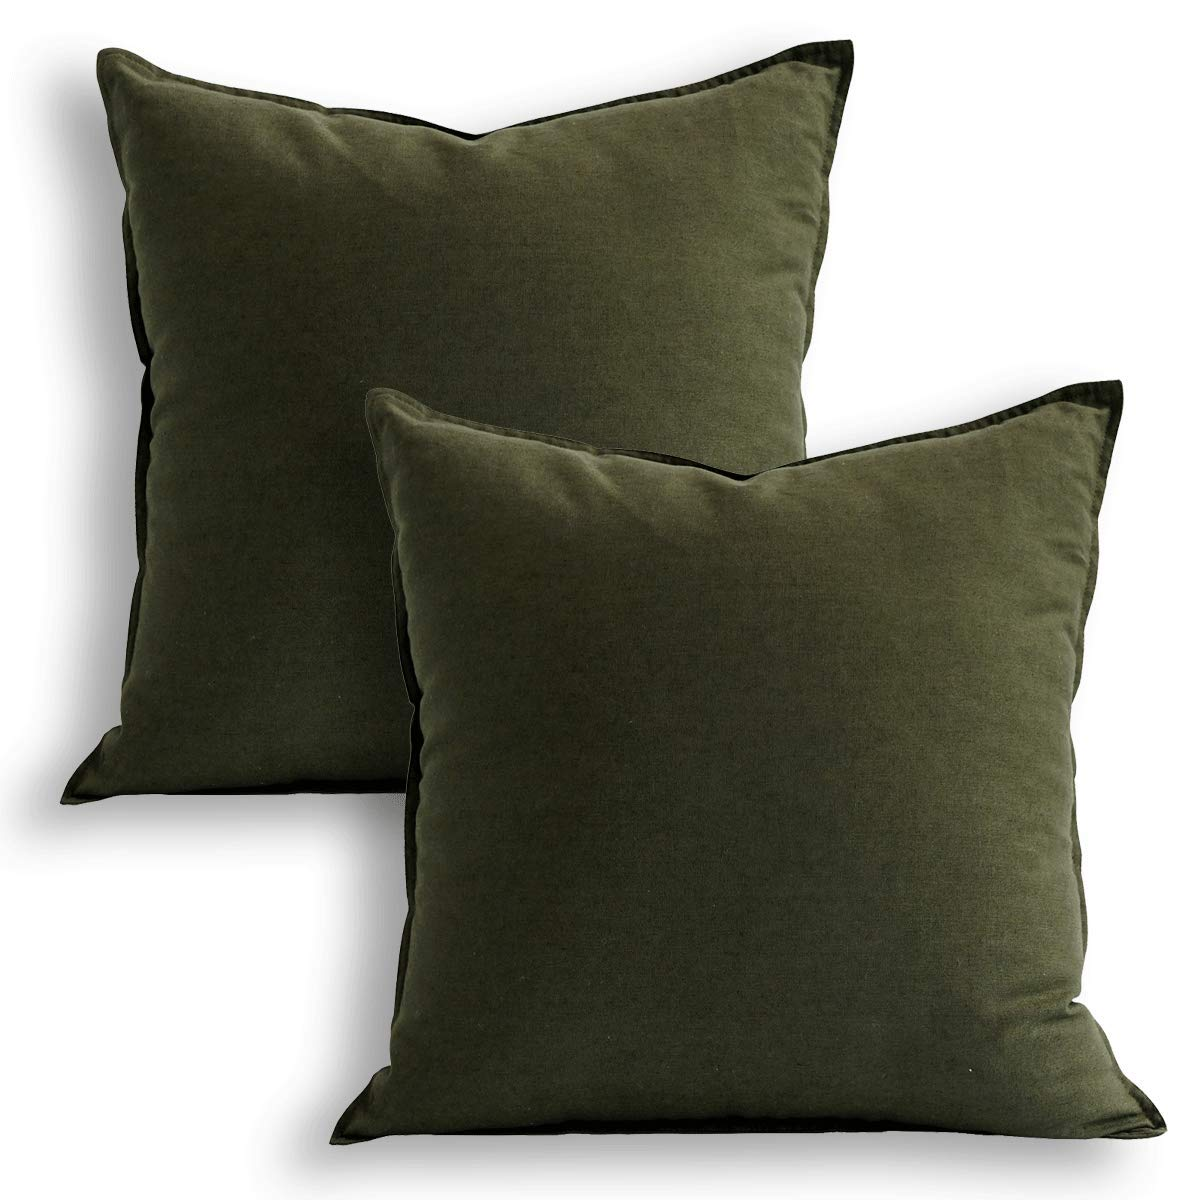 18''x18'' Solid Cotton Linen Decoration Green Throw Pillow Case with Zipper Euro Sham Cushion Case Cool Pillow Cover Delicate Decorative Pillowcase for Chair/Bed/Couch, (45 x 45cm),2 Packs, Olive Green